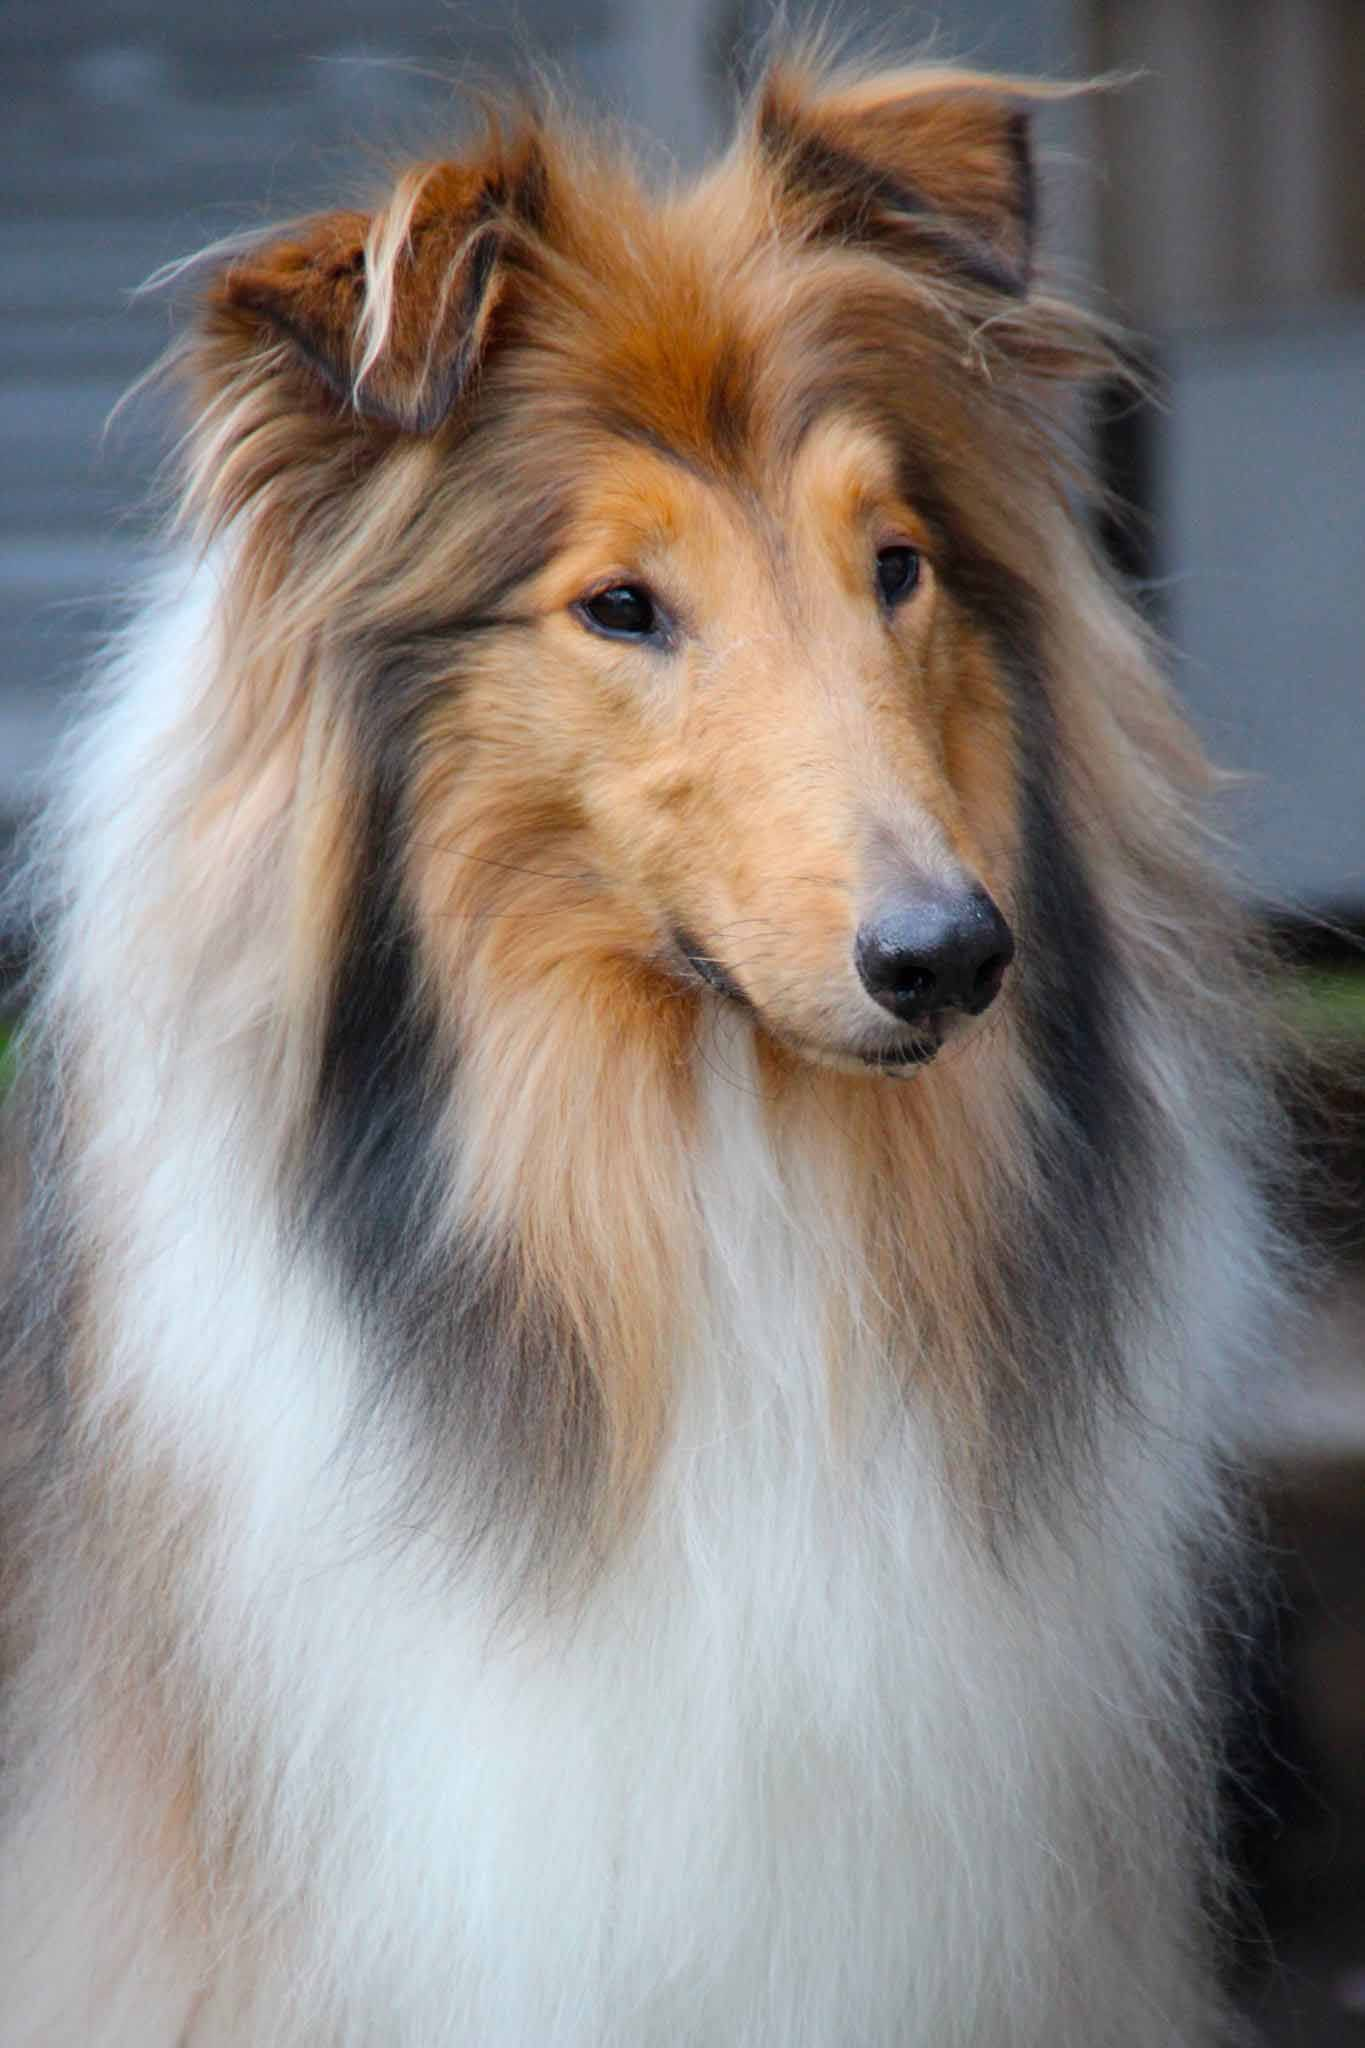 Dany Collie Rough Pawshake Collie Dog Collie Breeds Dog Breeds